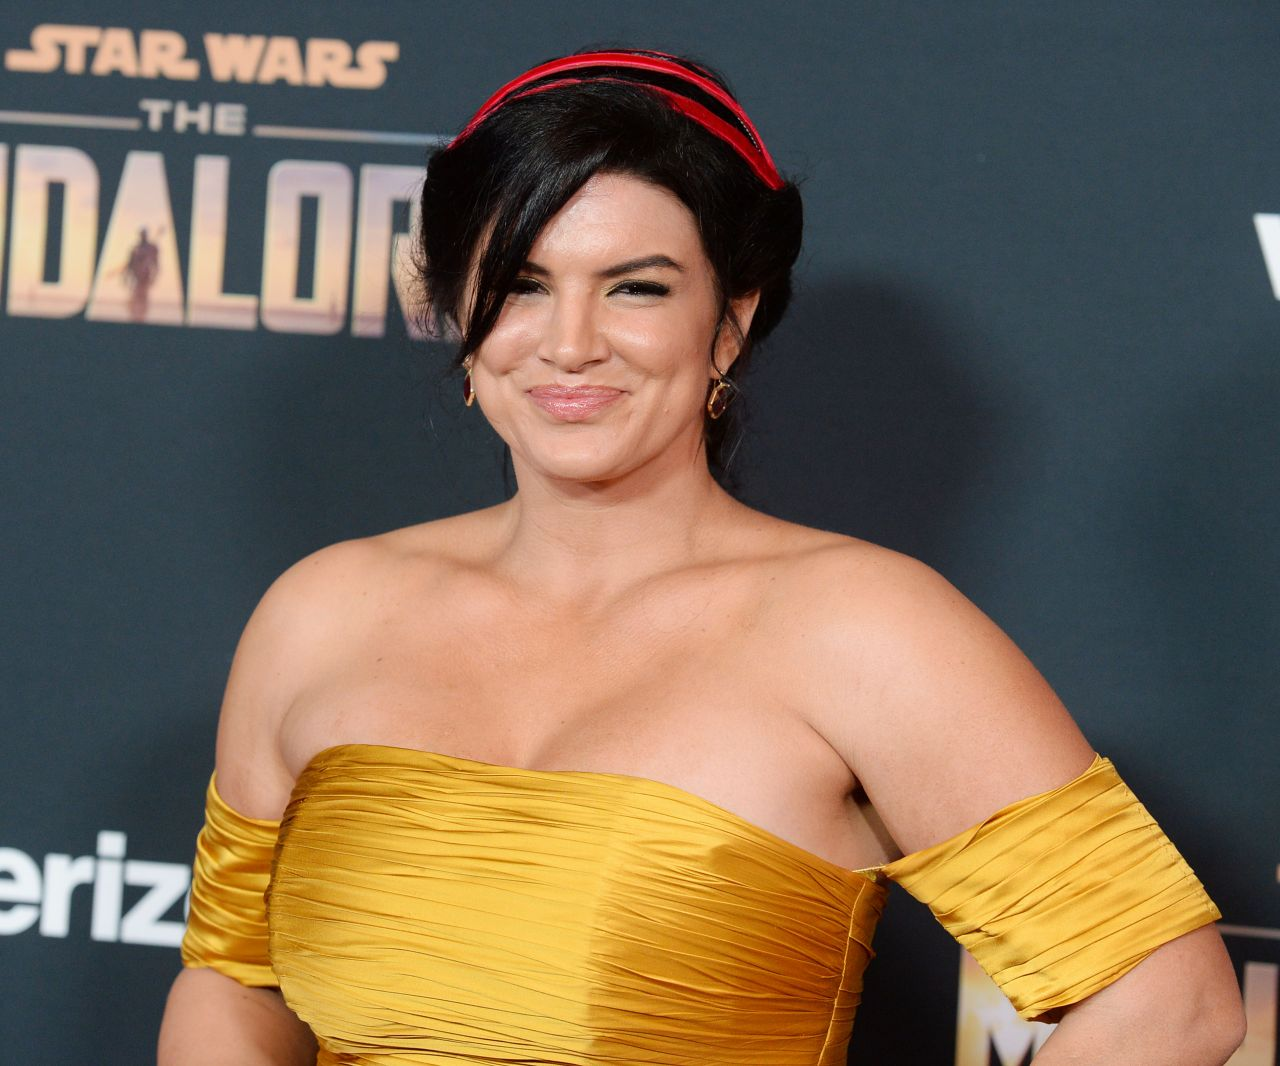 17 Best images about Gina Carano on Pinterest | Muscle ...  |Gina Carano